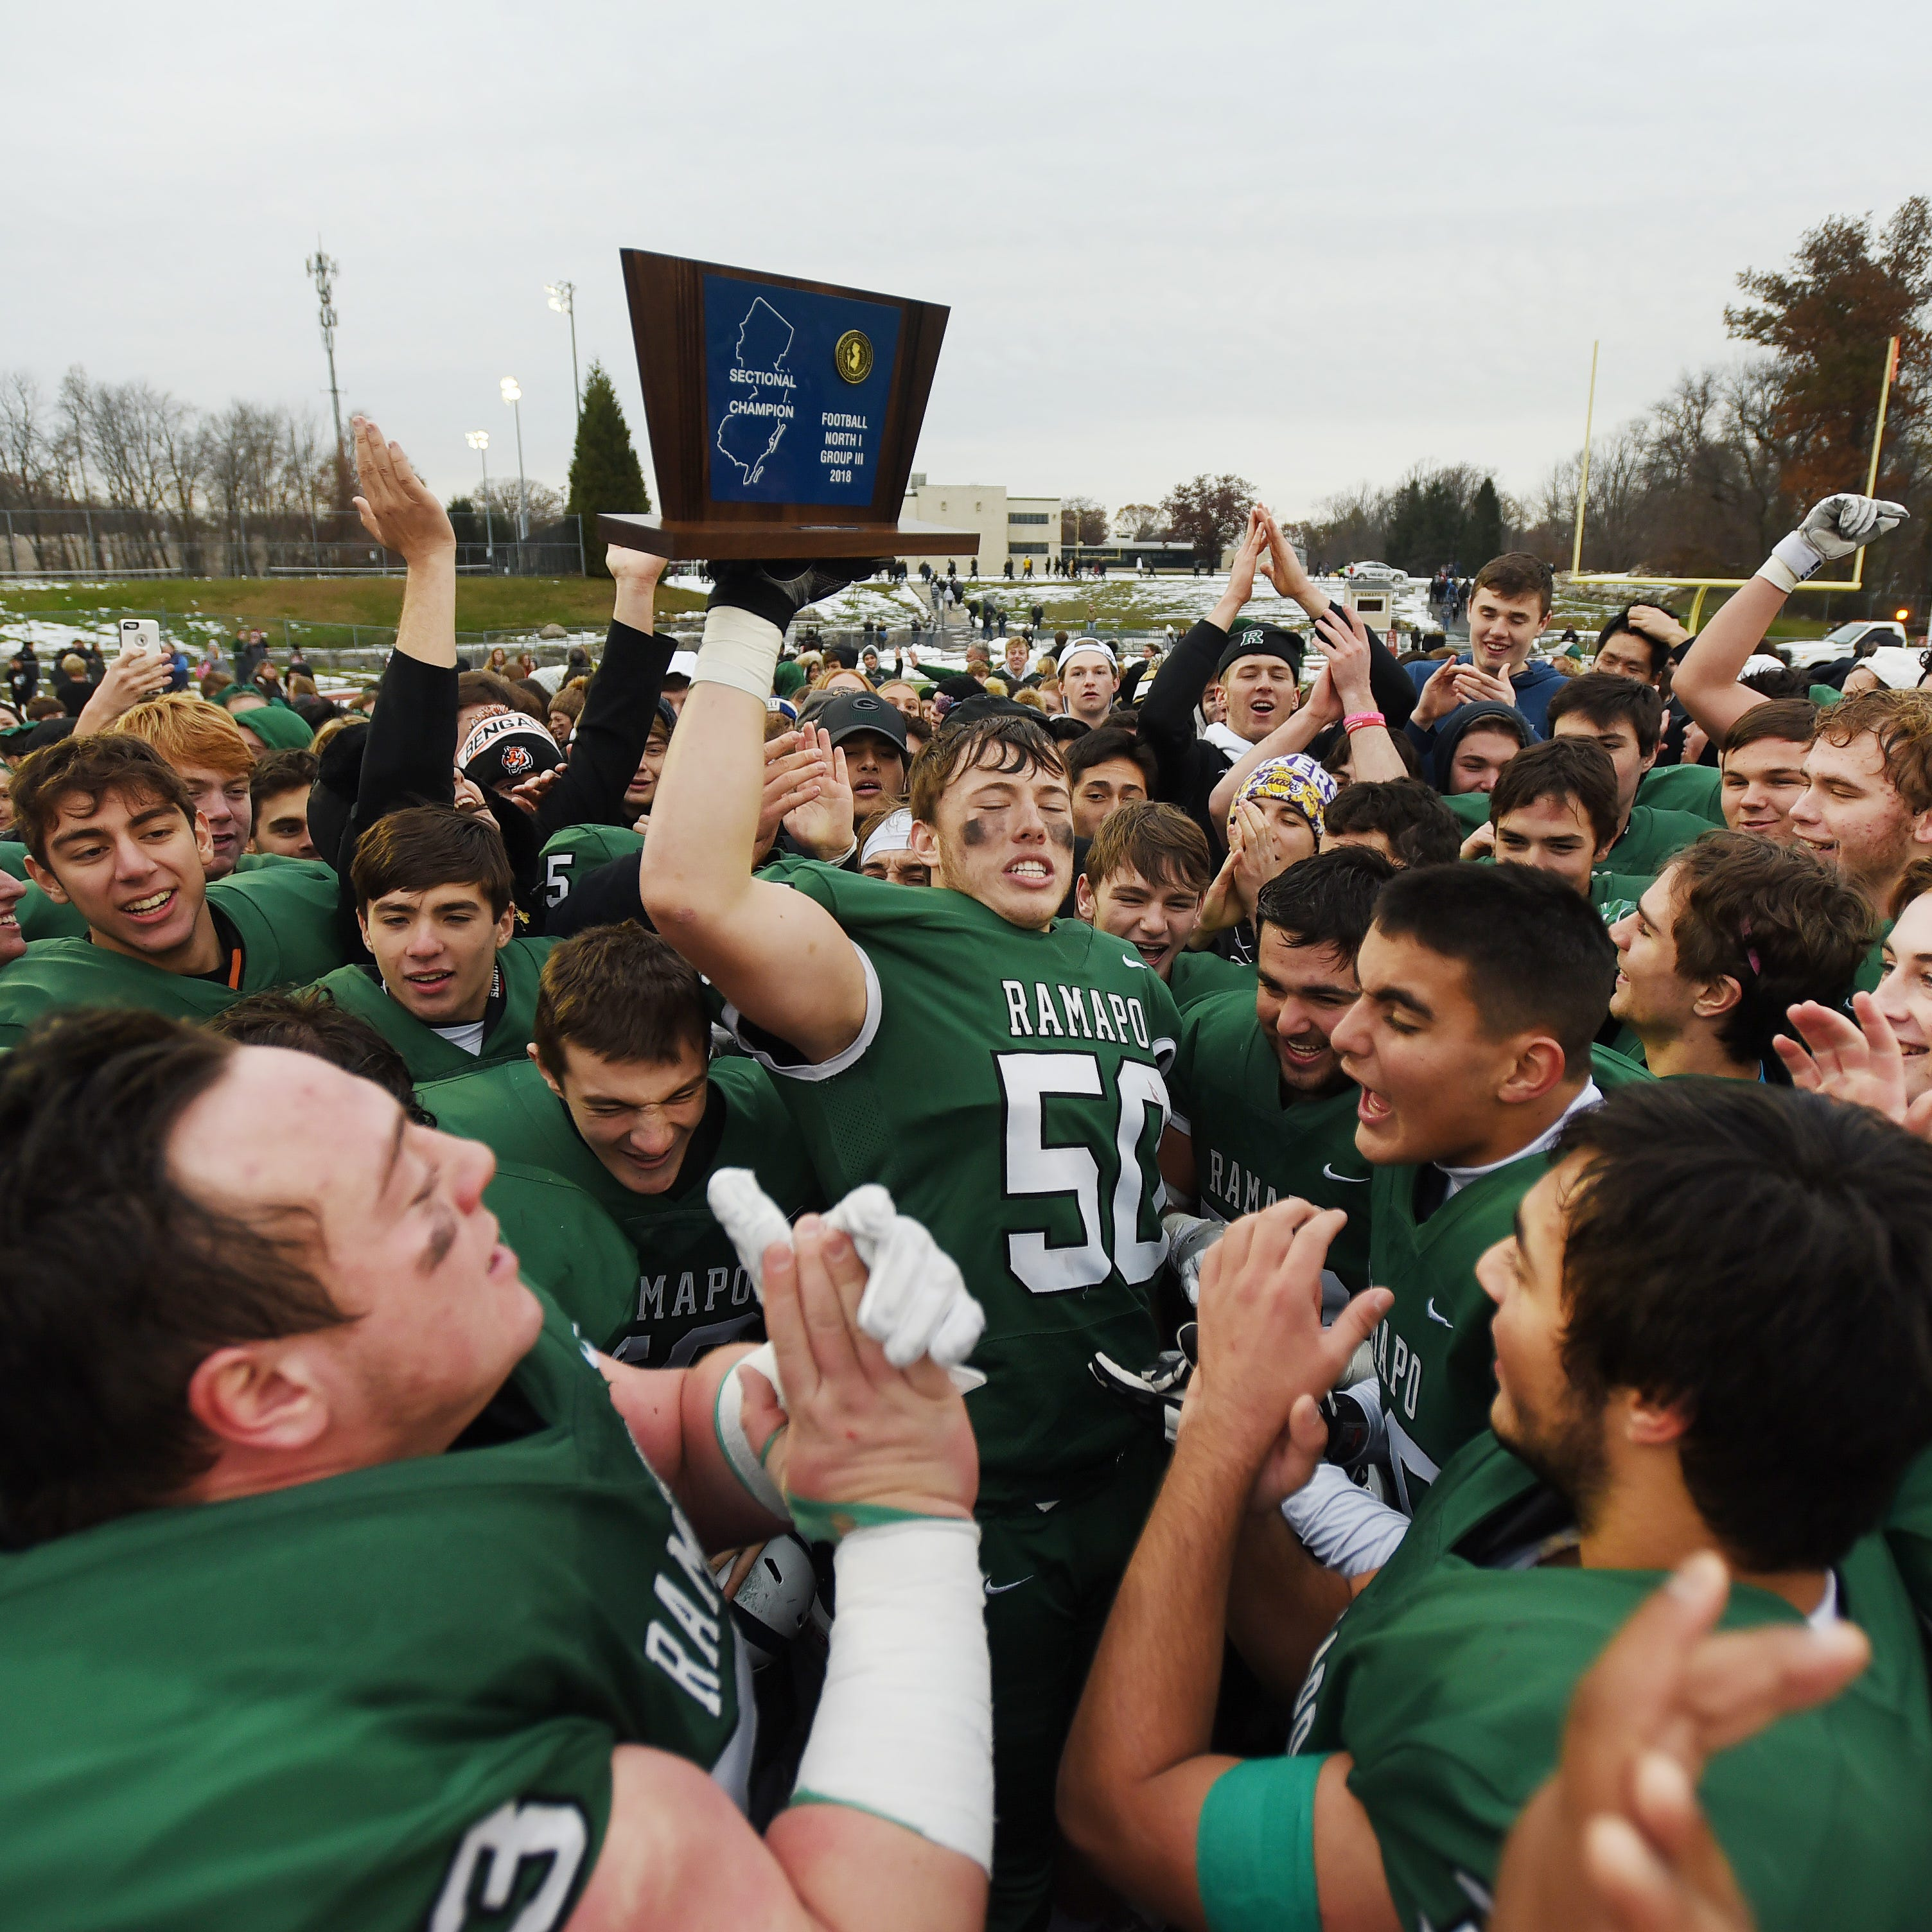 Ramapo football dominates defending champ River Dell for sectional title